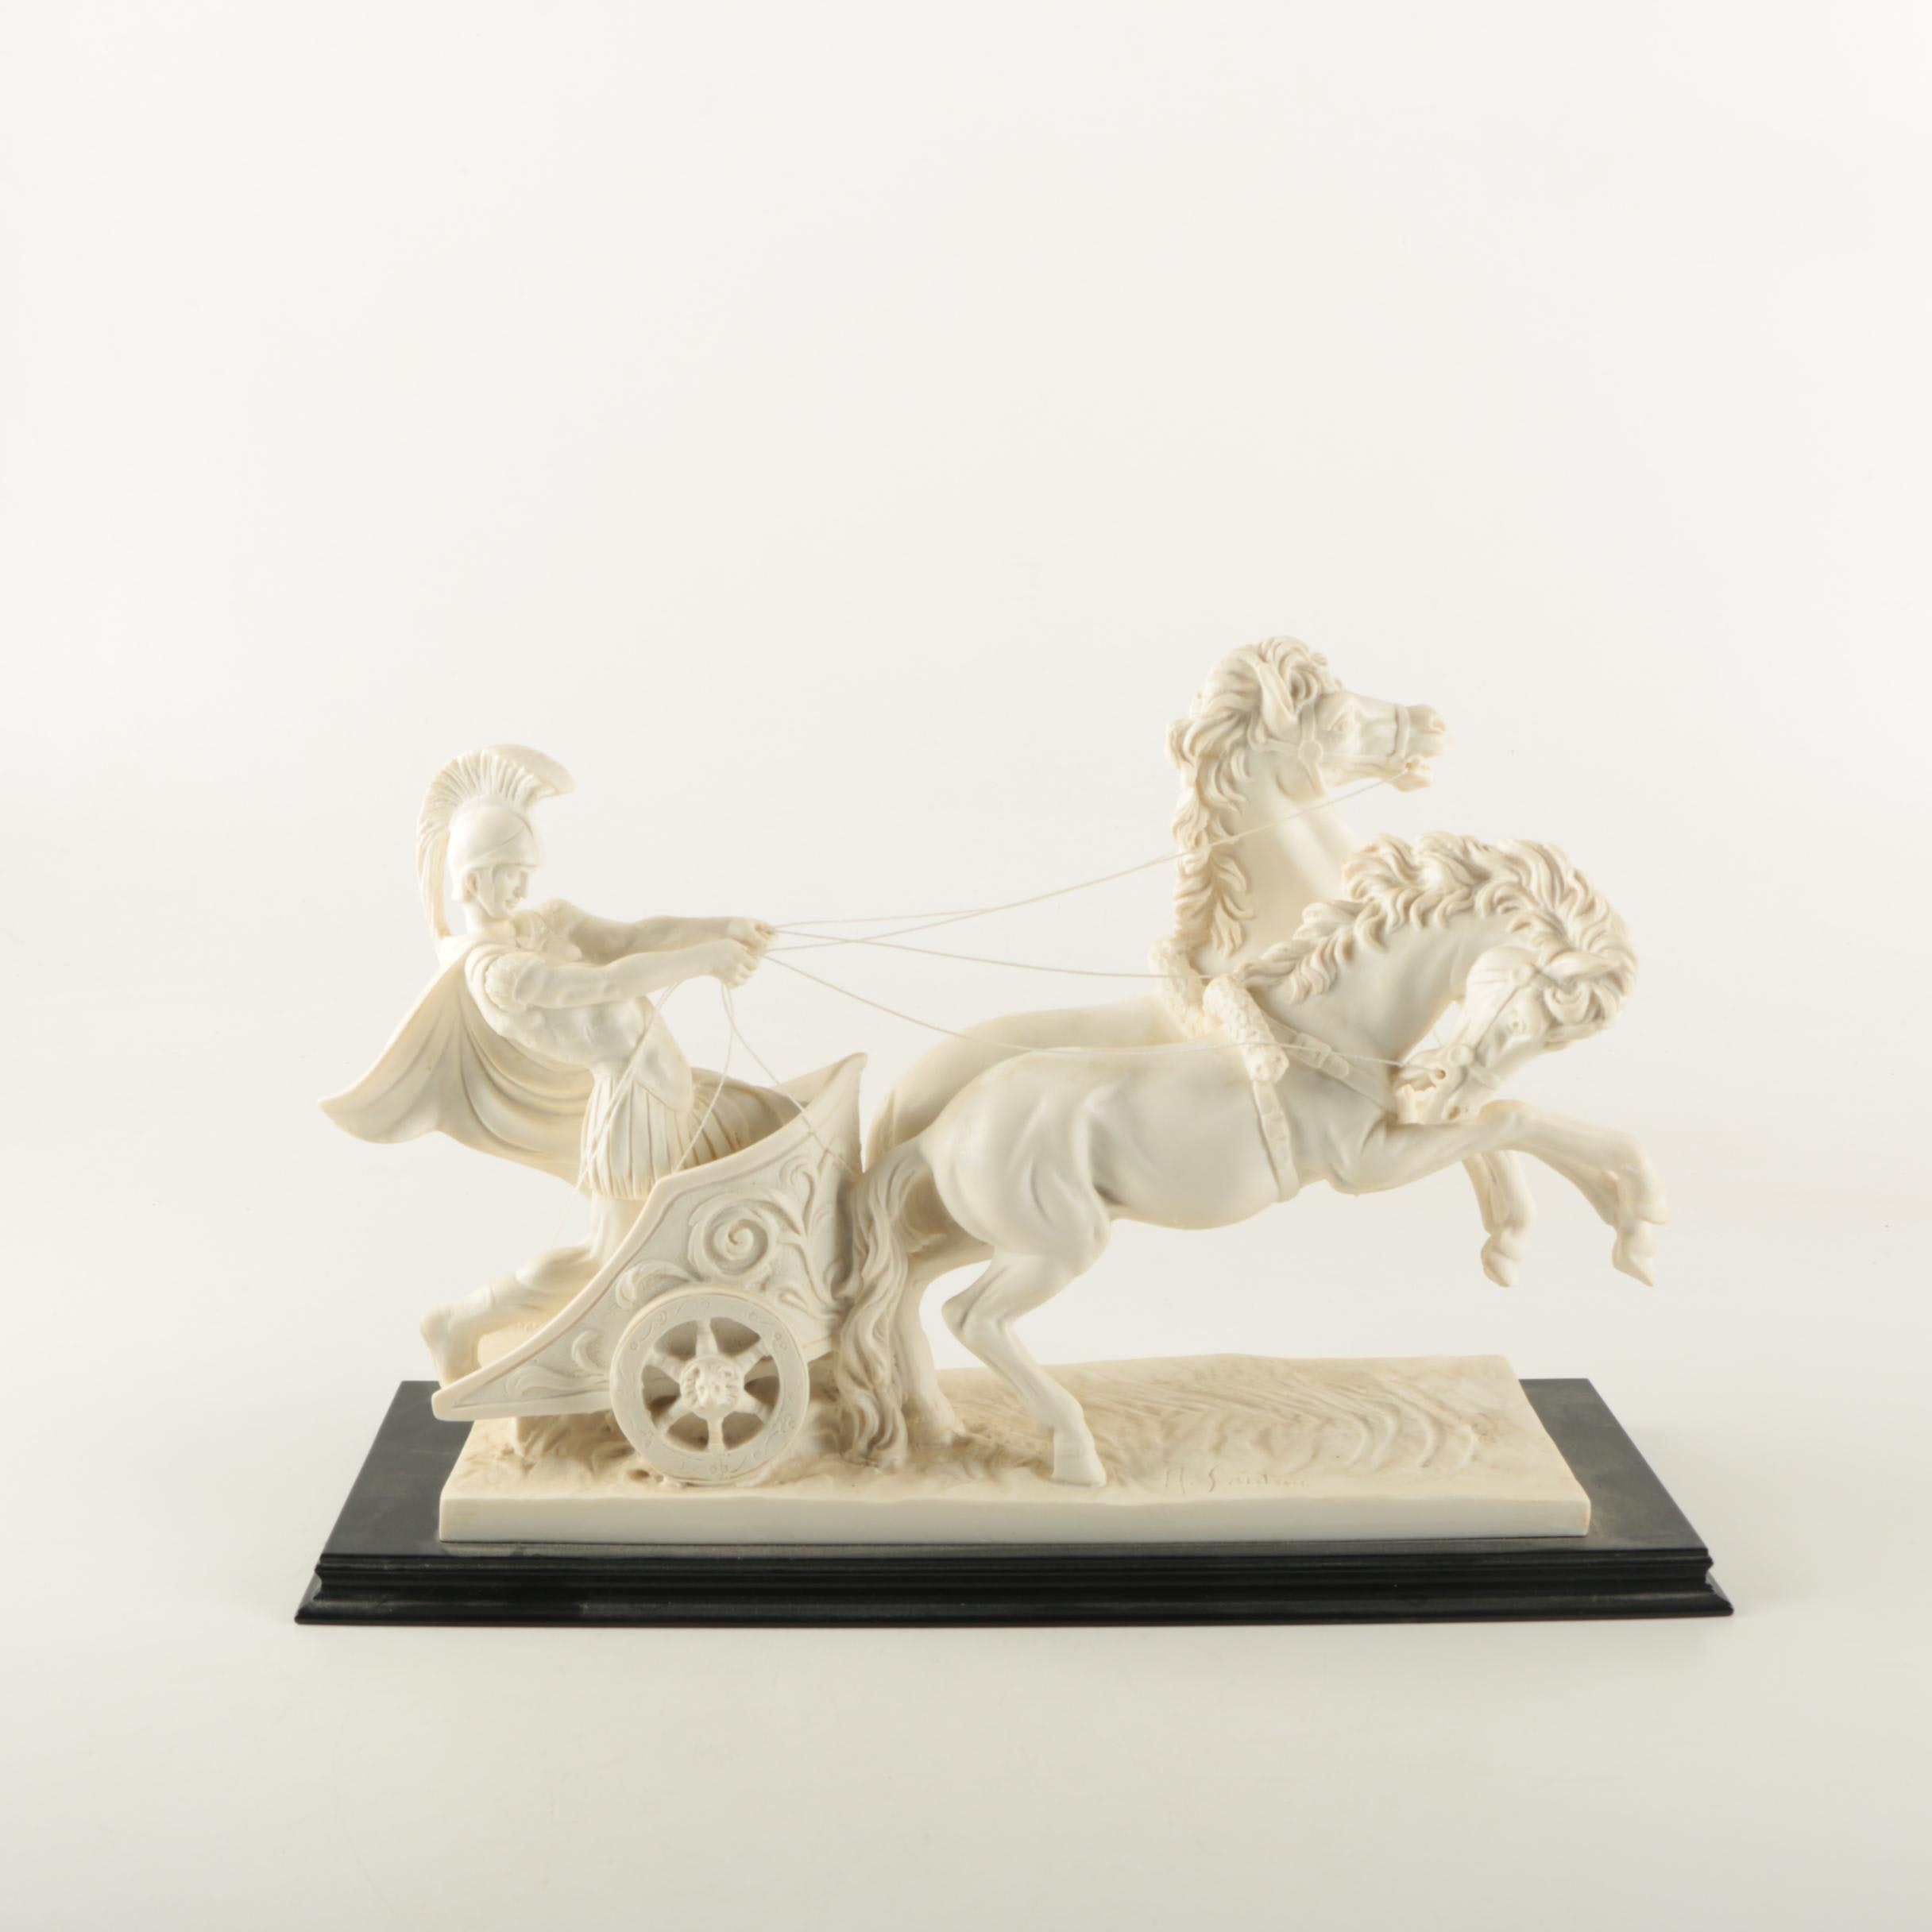 Reproduction Resin Sculpture of Roman Charioteer